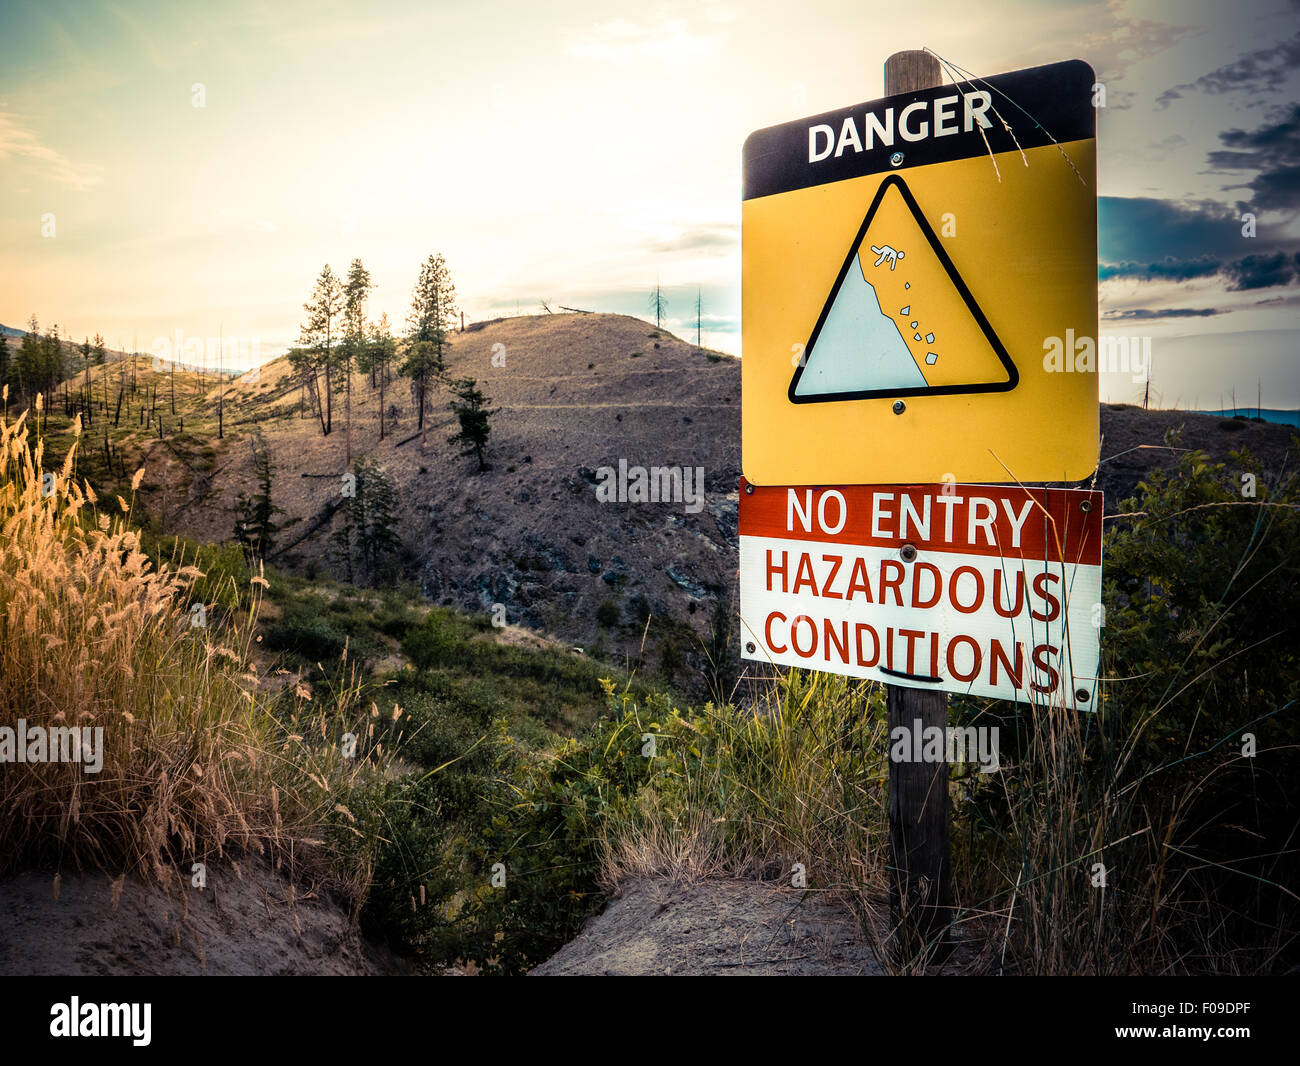 A Danger Sign On The Edge Of Cliff On A Hiking Trail - Stock Image